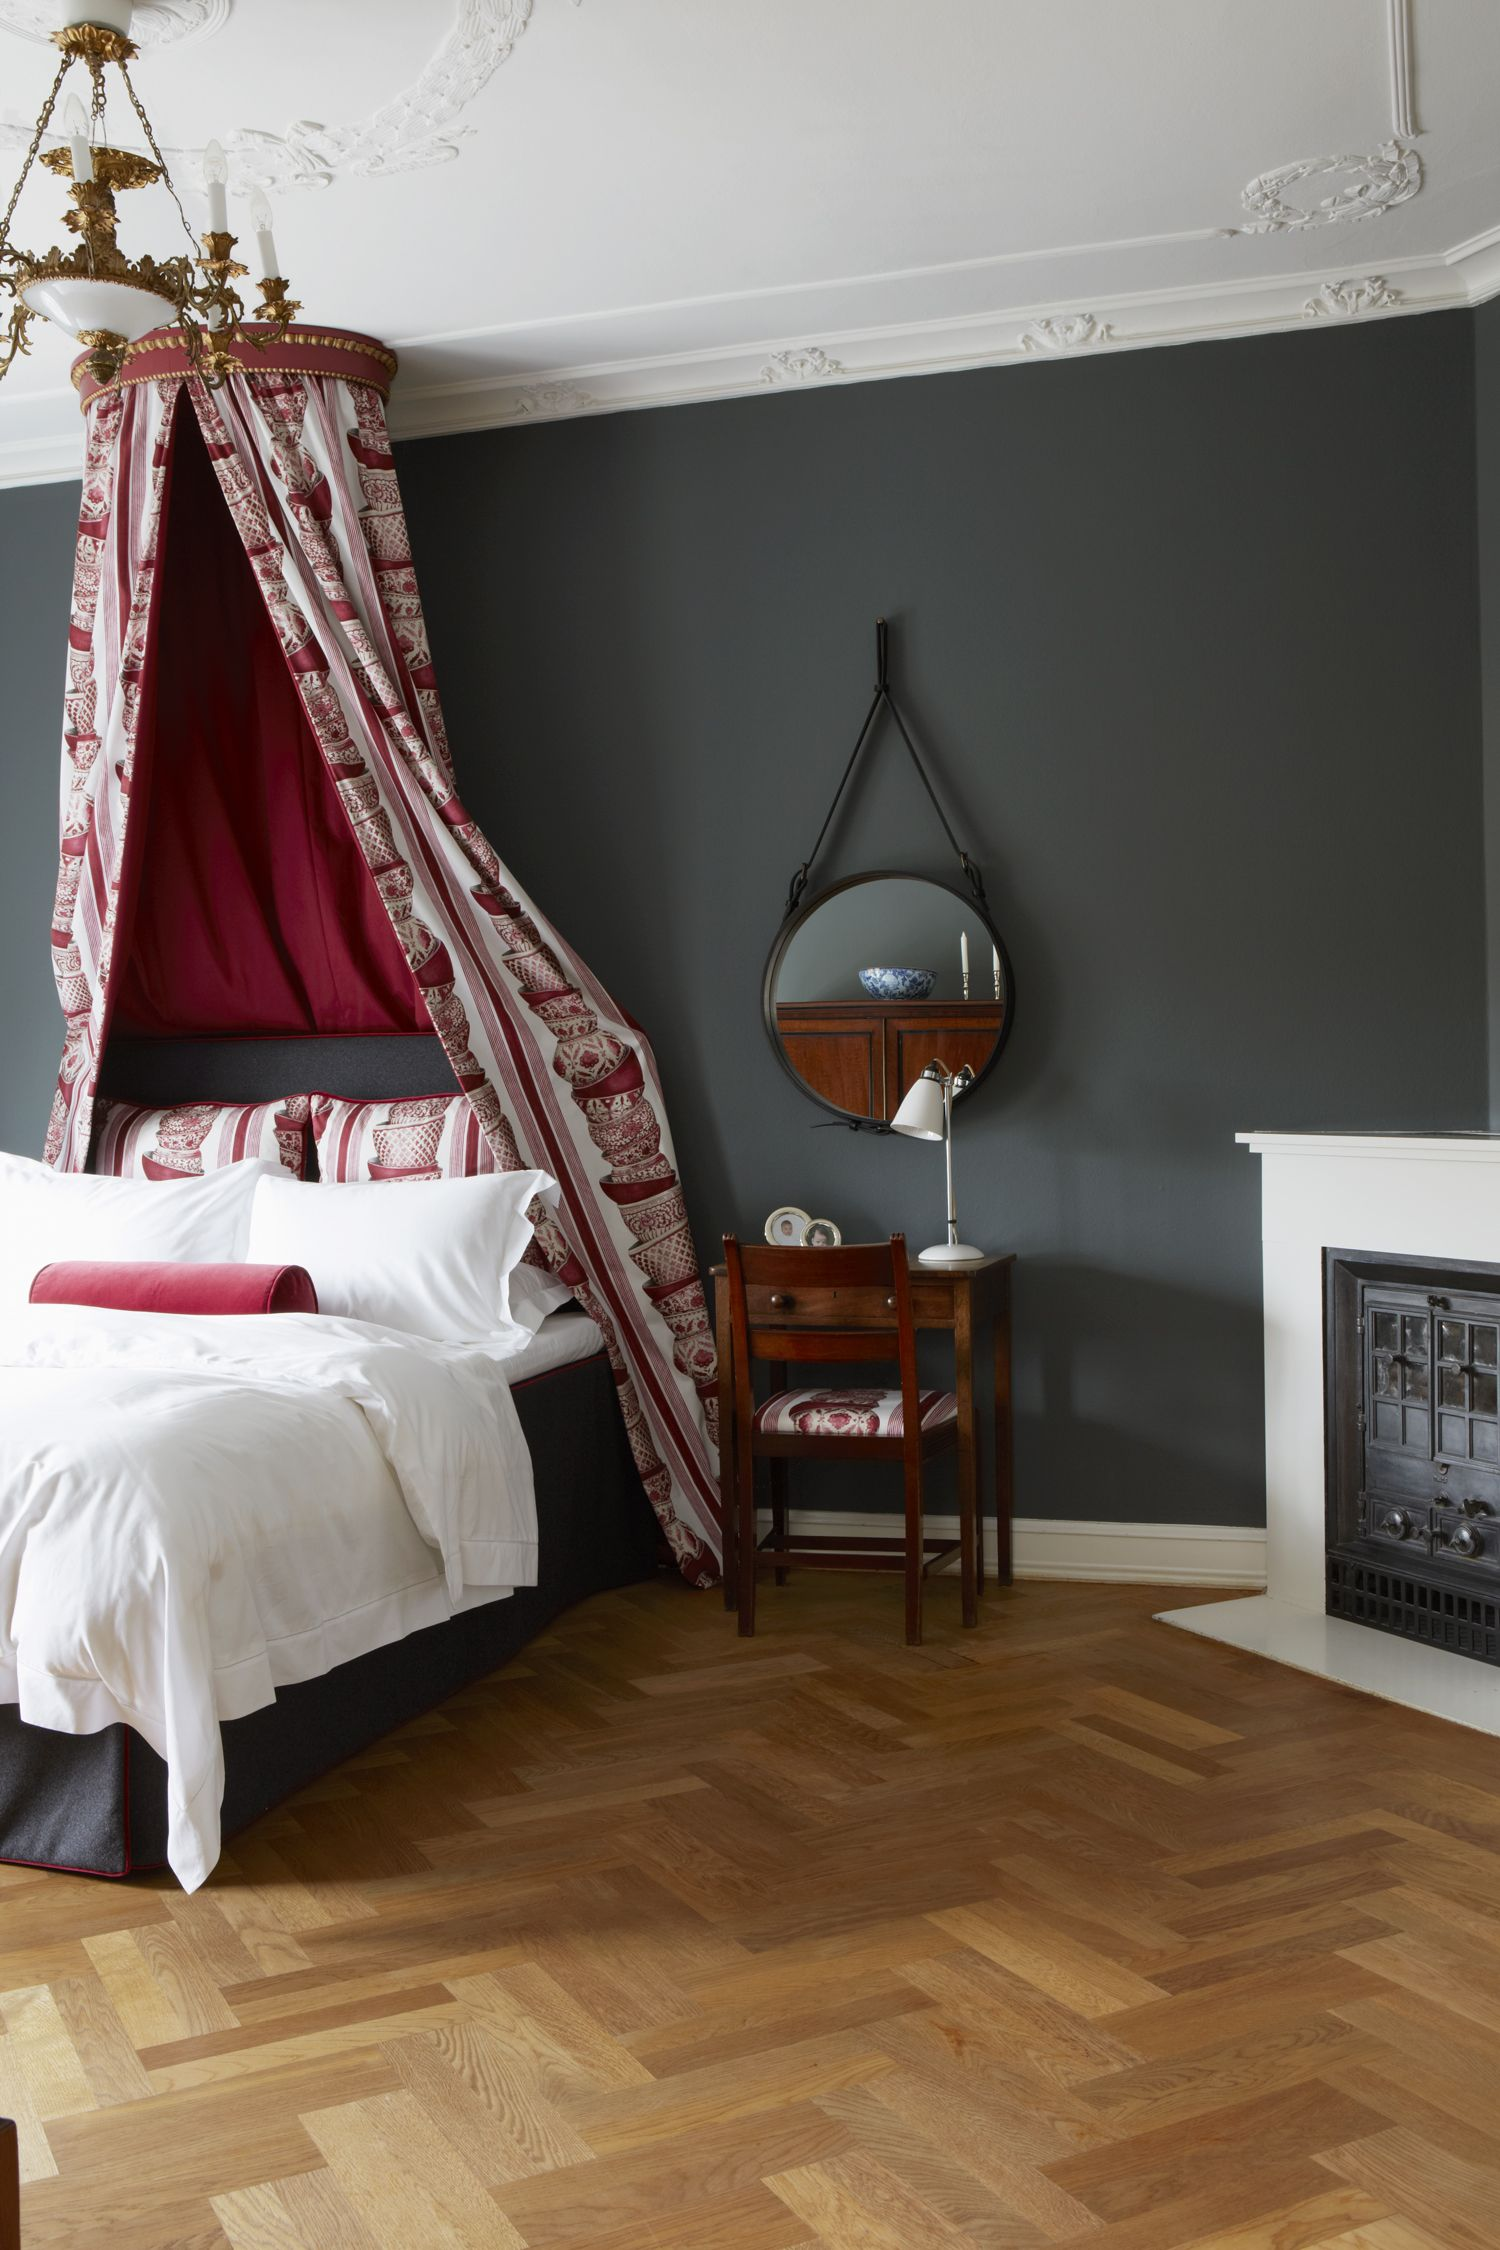 Bedroom with parquet flooring and wall painted in down for Pipe decorating ideas